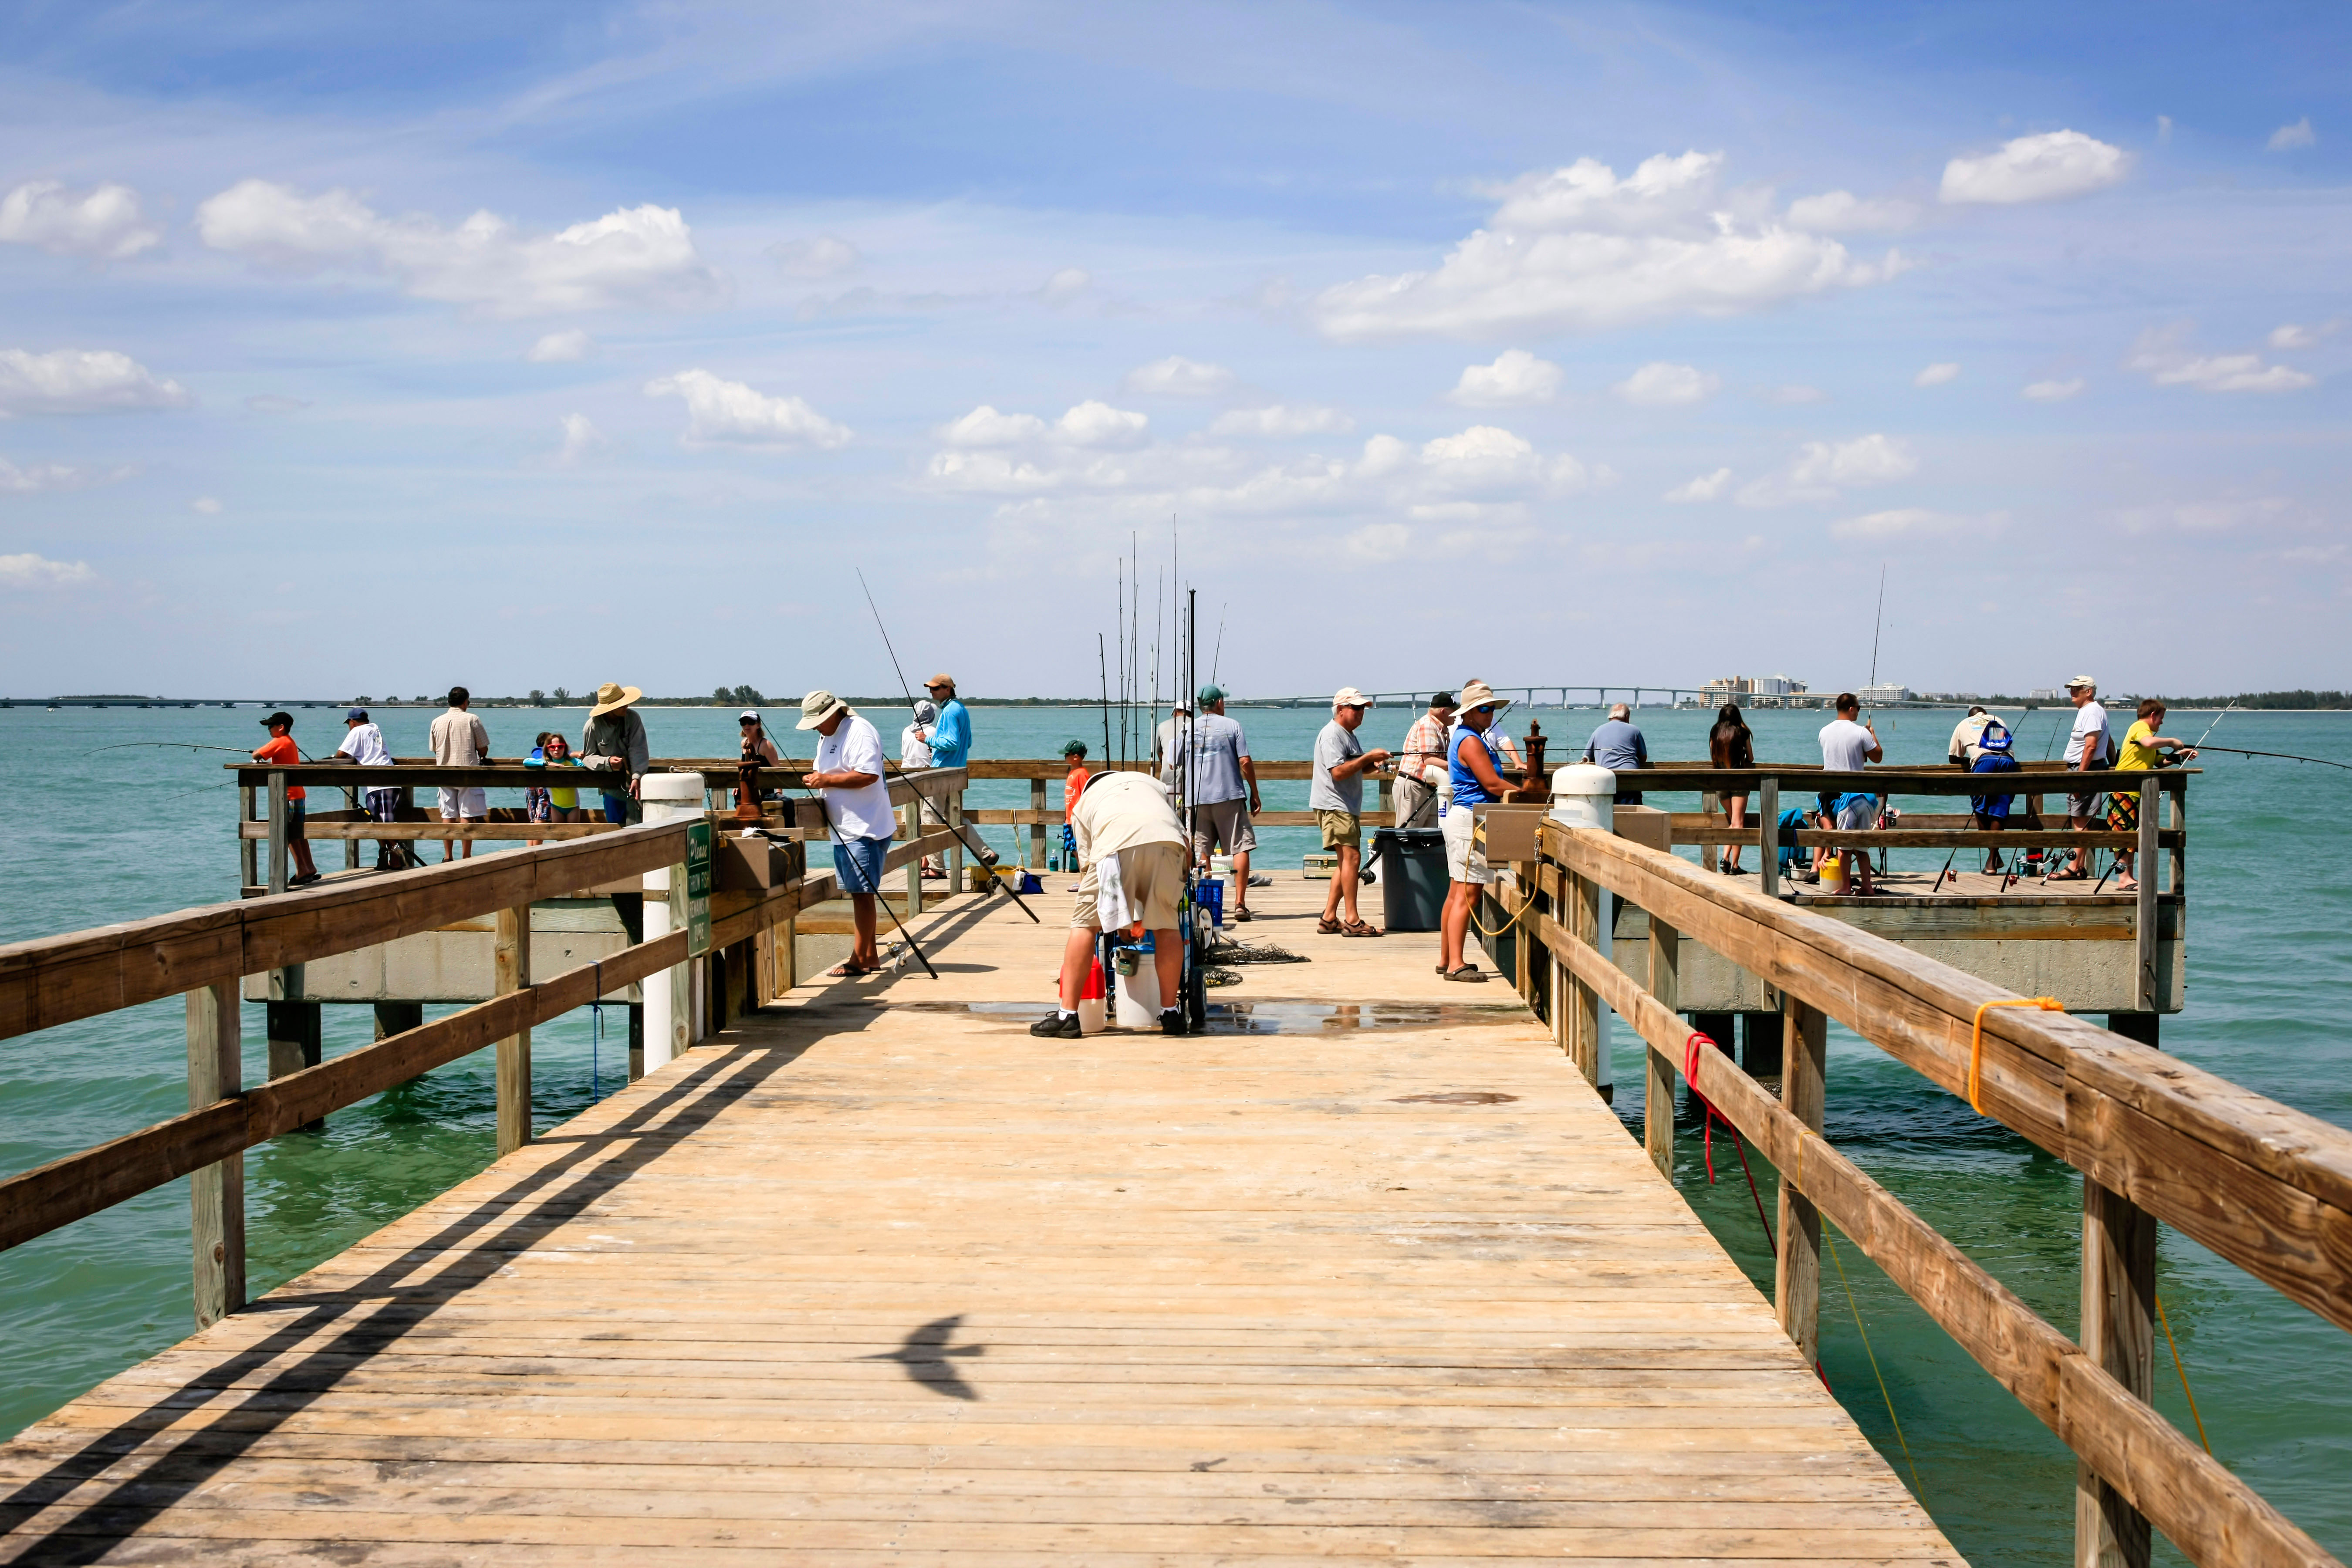 The Fishing Pier on Sanibel island Florida popular with all ages